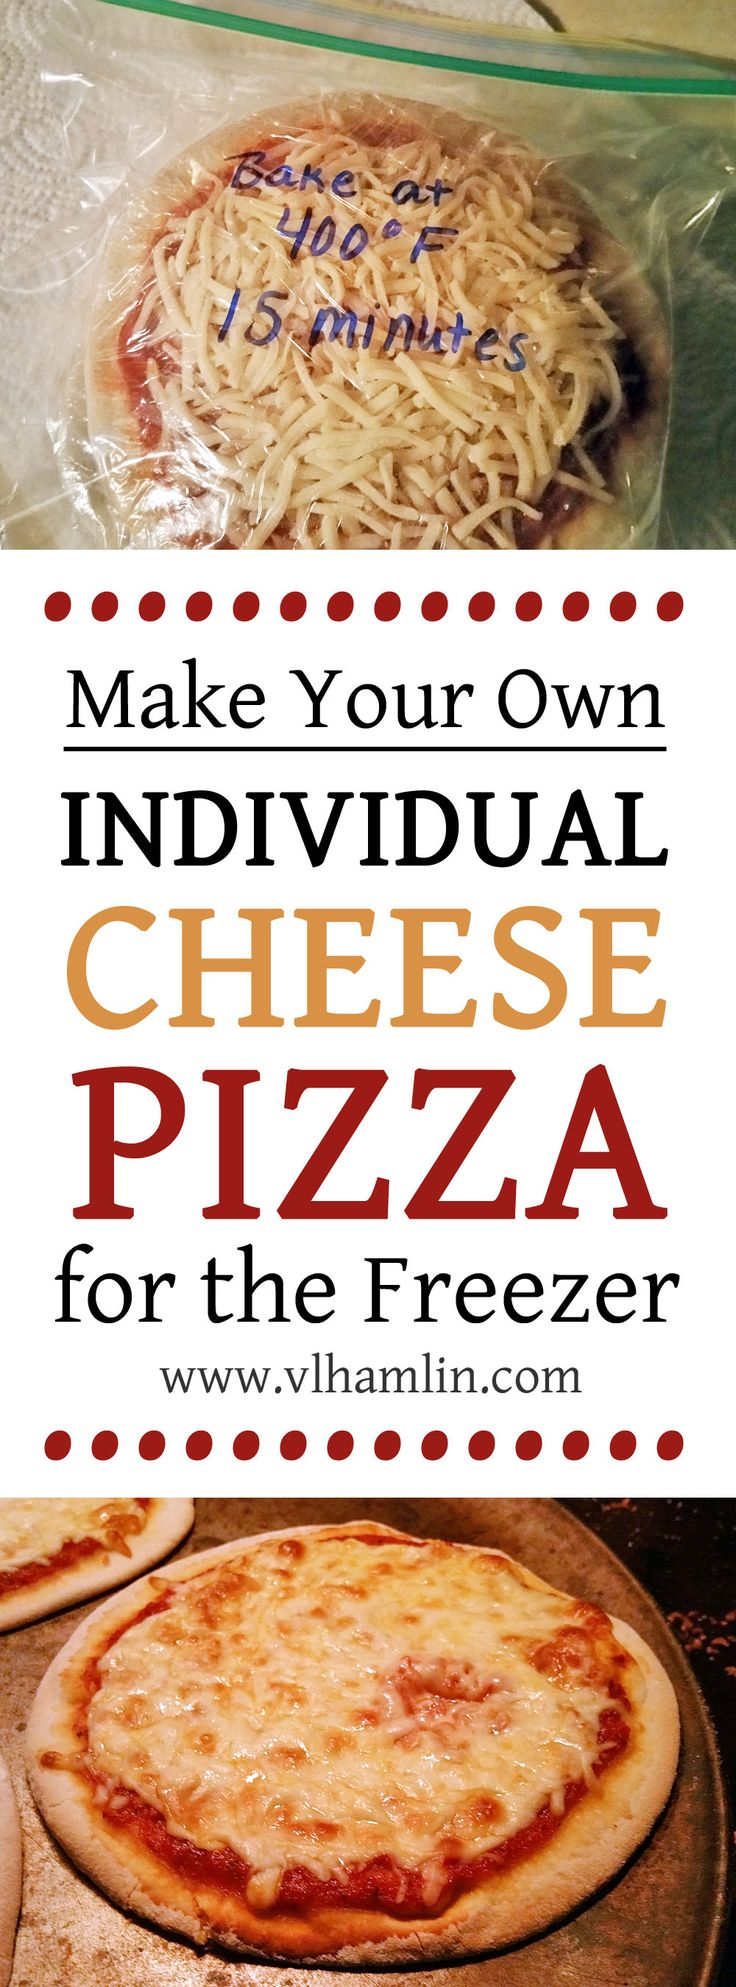 Make Your Own Individual Cheese Pizza for the Freezer